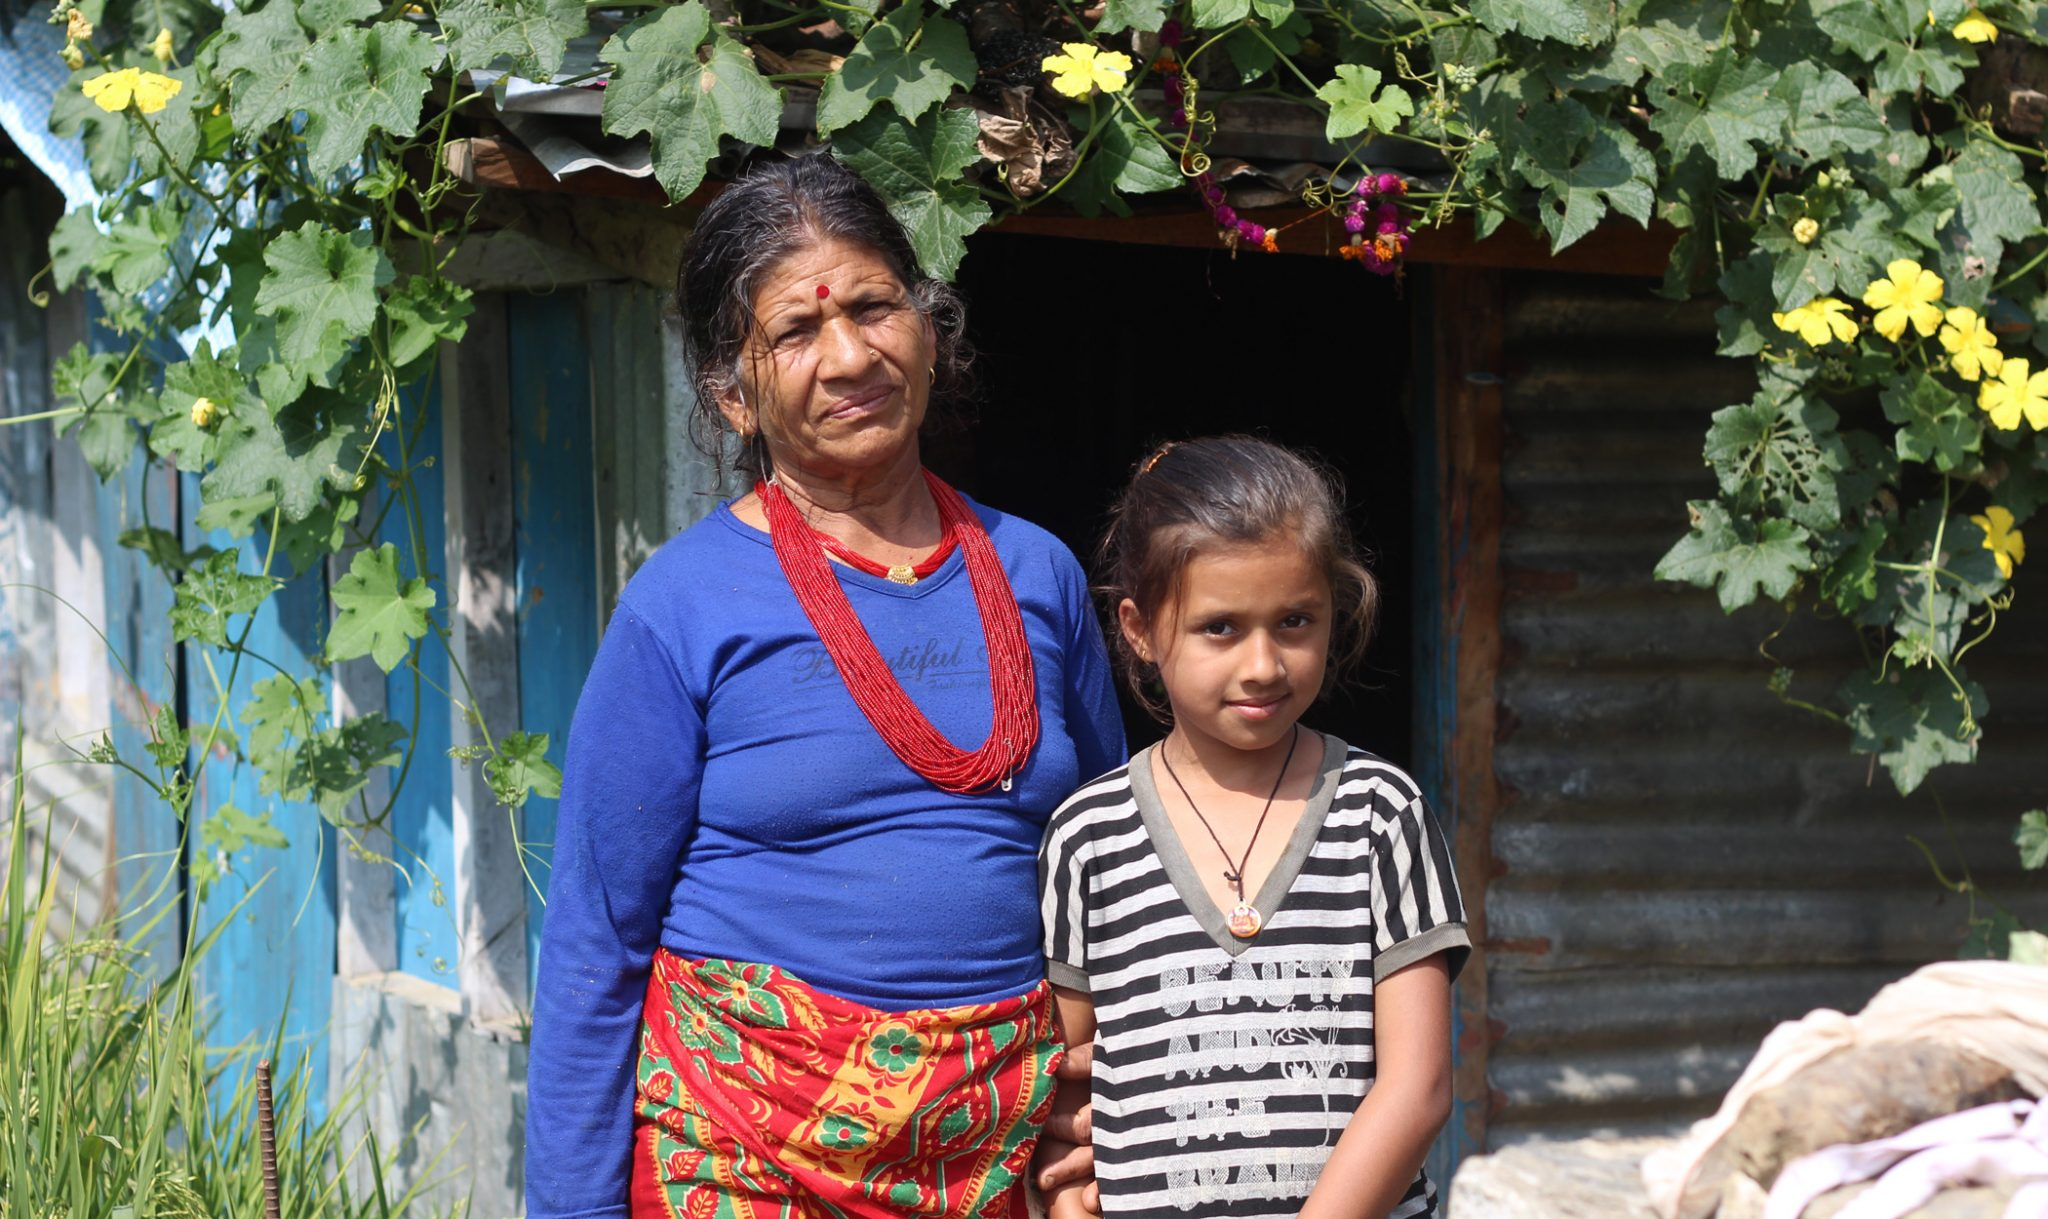 Bal Kumari Parajuli and her granddaughter, Dikshika, who now lives in Kathmandu with her parents